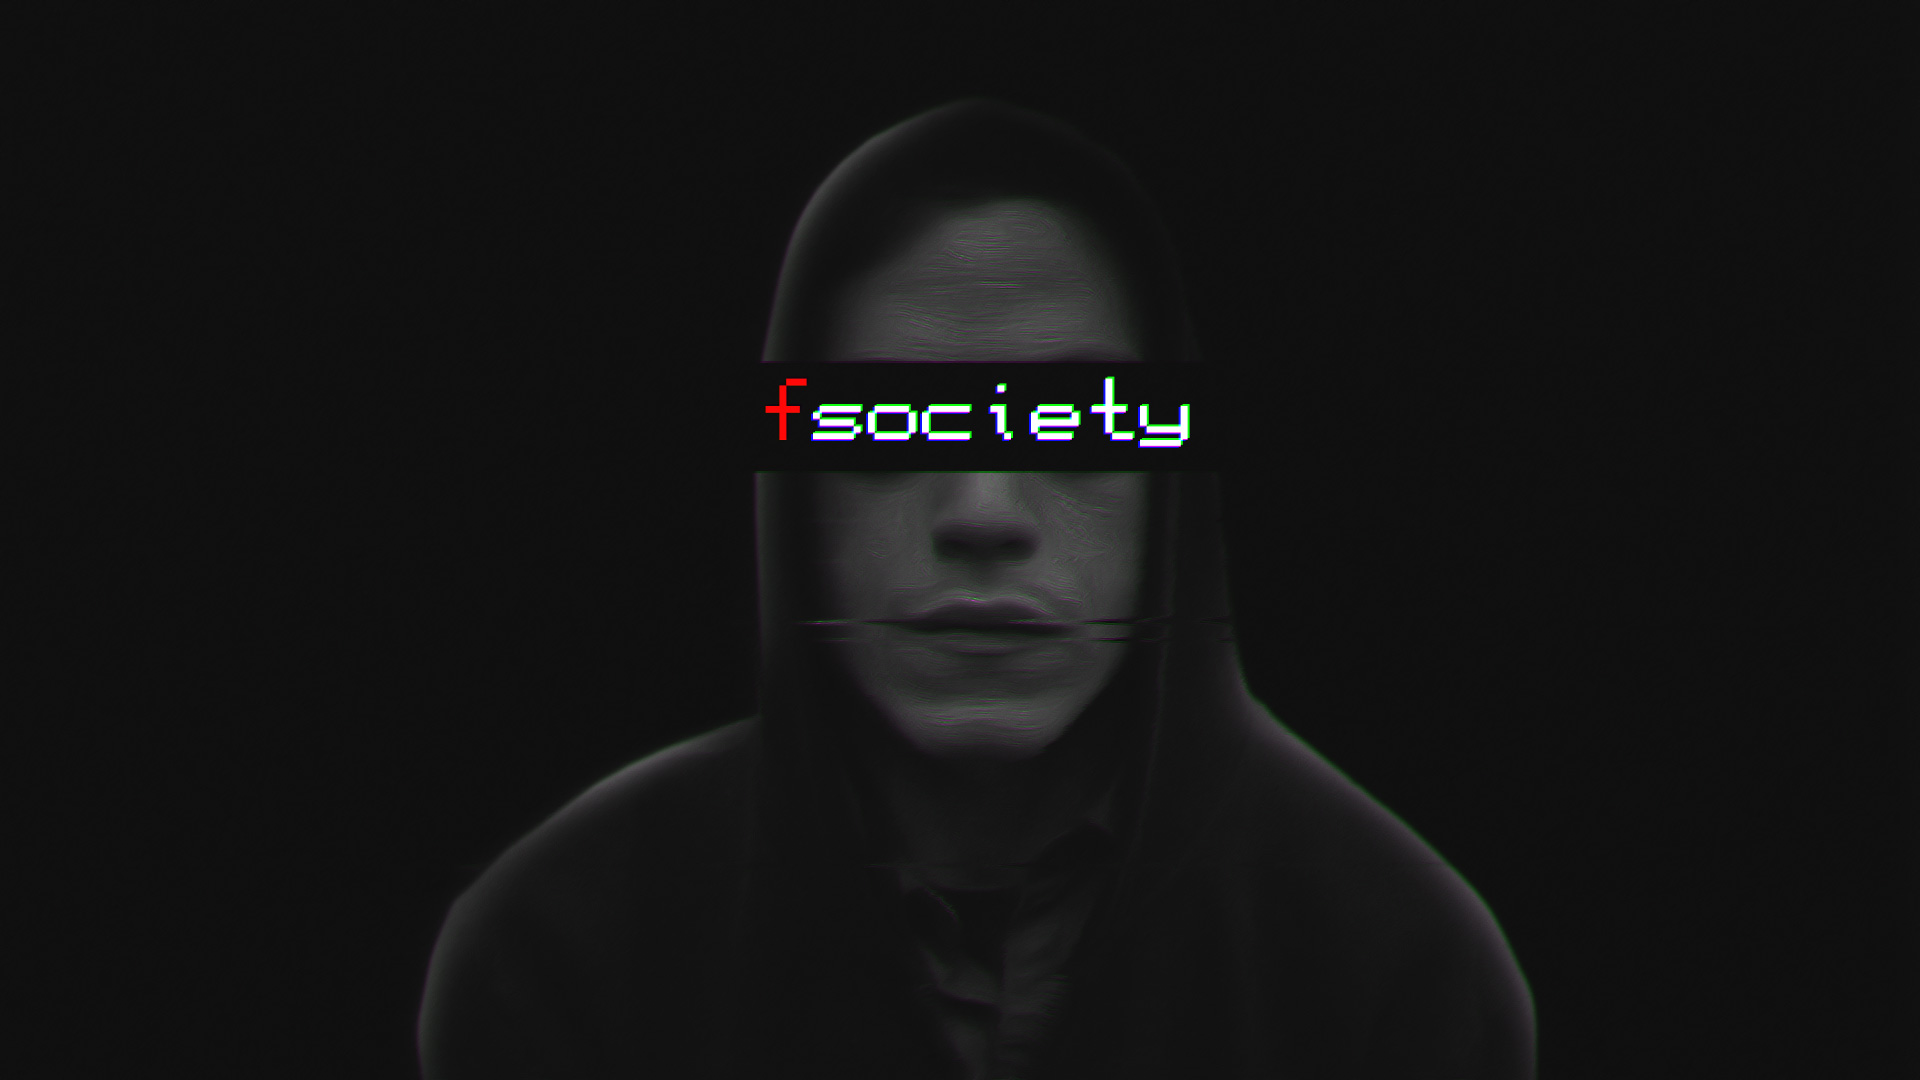 Fsociety Mr Robot, HD Tv Shows, 4k Wallpapers, Images ...